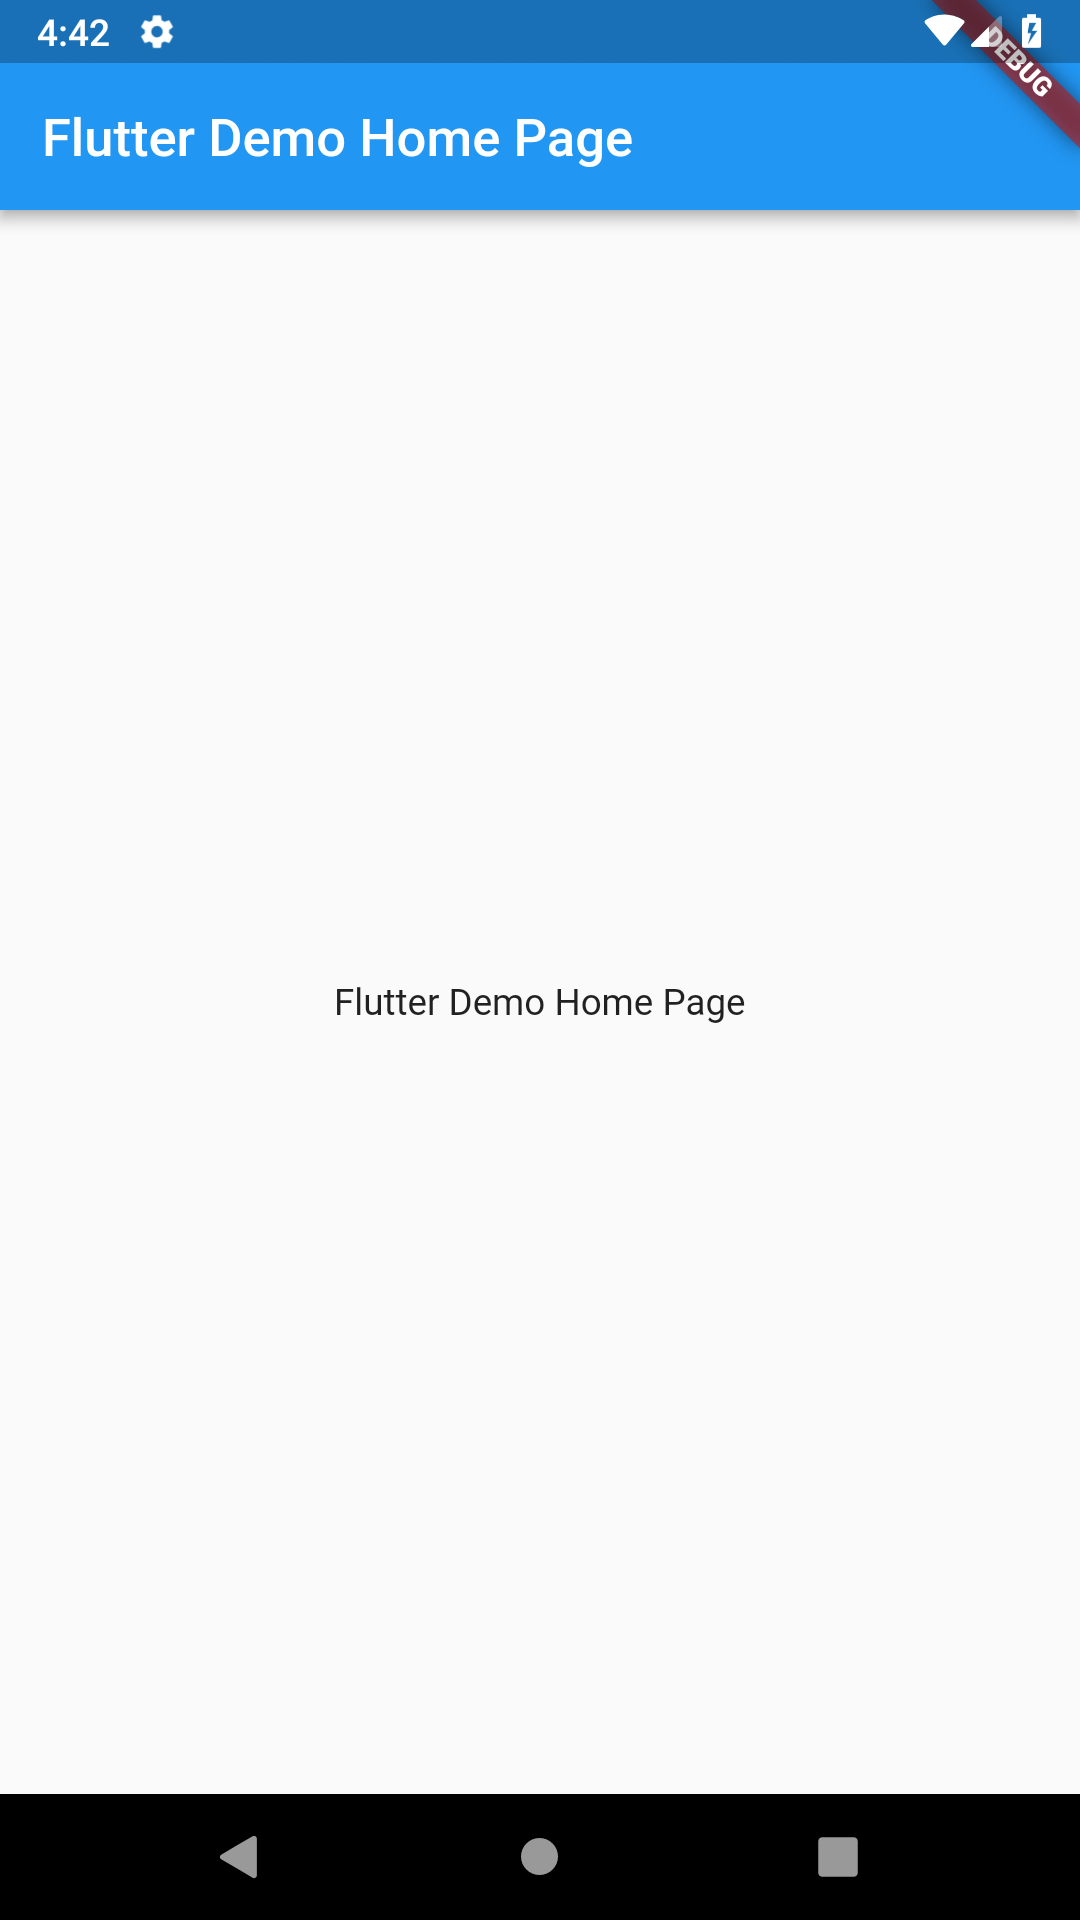 A month of Flutter: initial theme - Bendyworks: We Make Web and